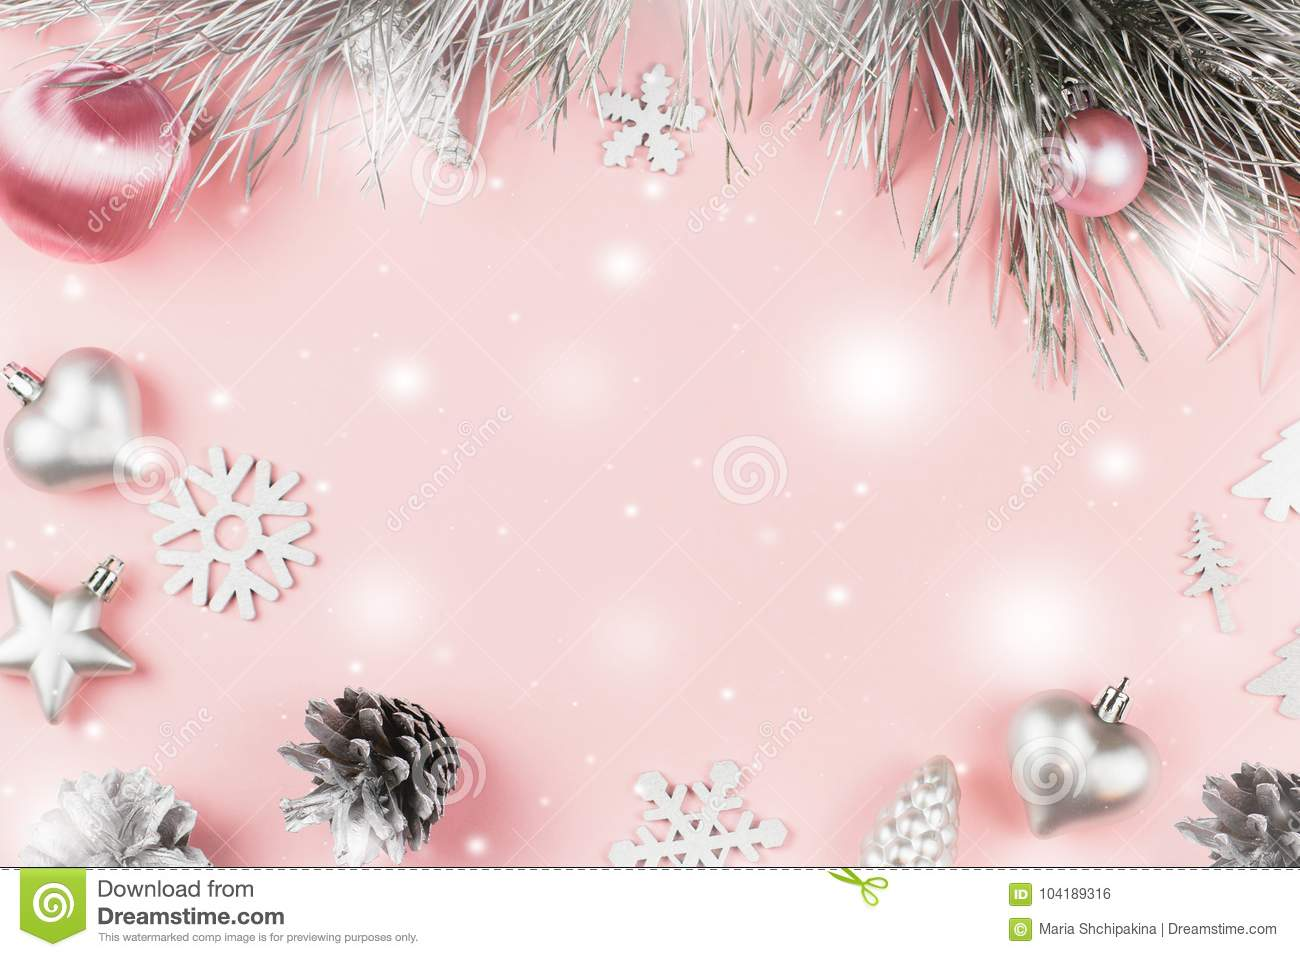 Christmas frame with fir branches, conifer cones, christmas balls and silver ornaments on pastel pink background